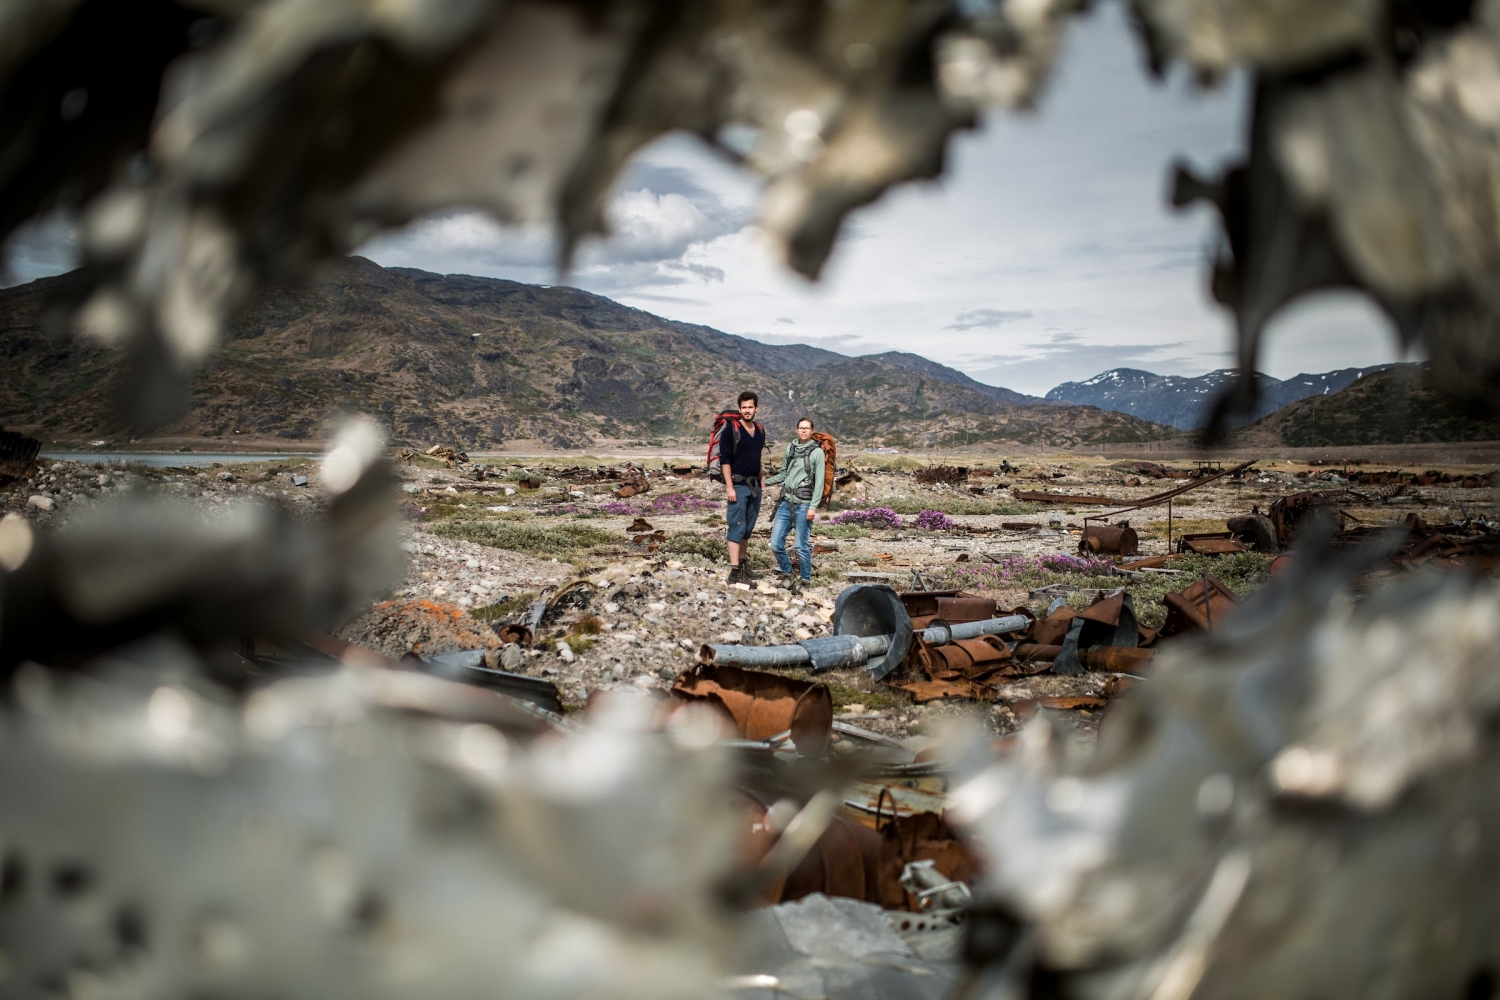 Exploring the remnants of the American air base in Narsarsuaq. Photo by Mads Pihl - Visit Greenland